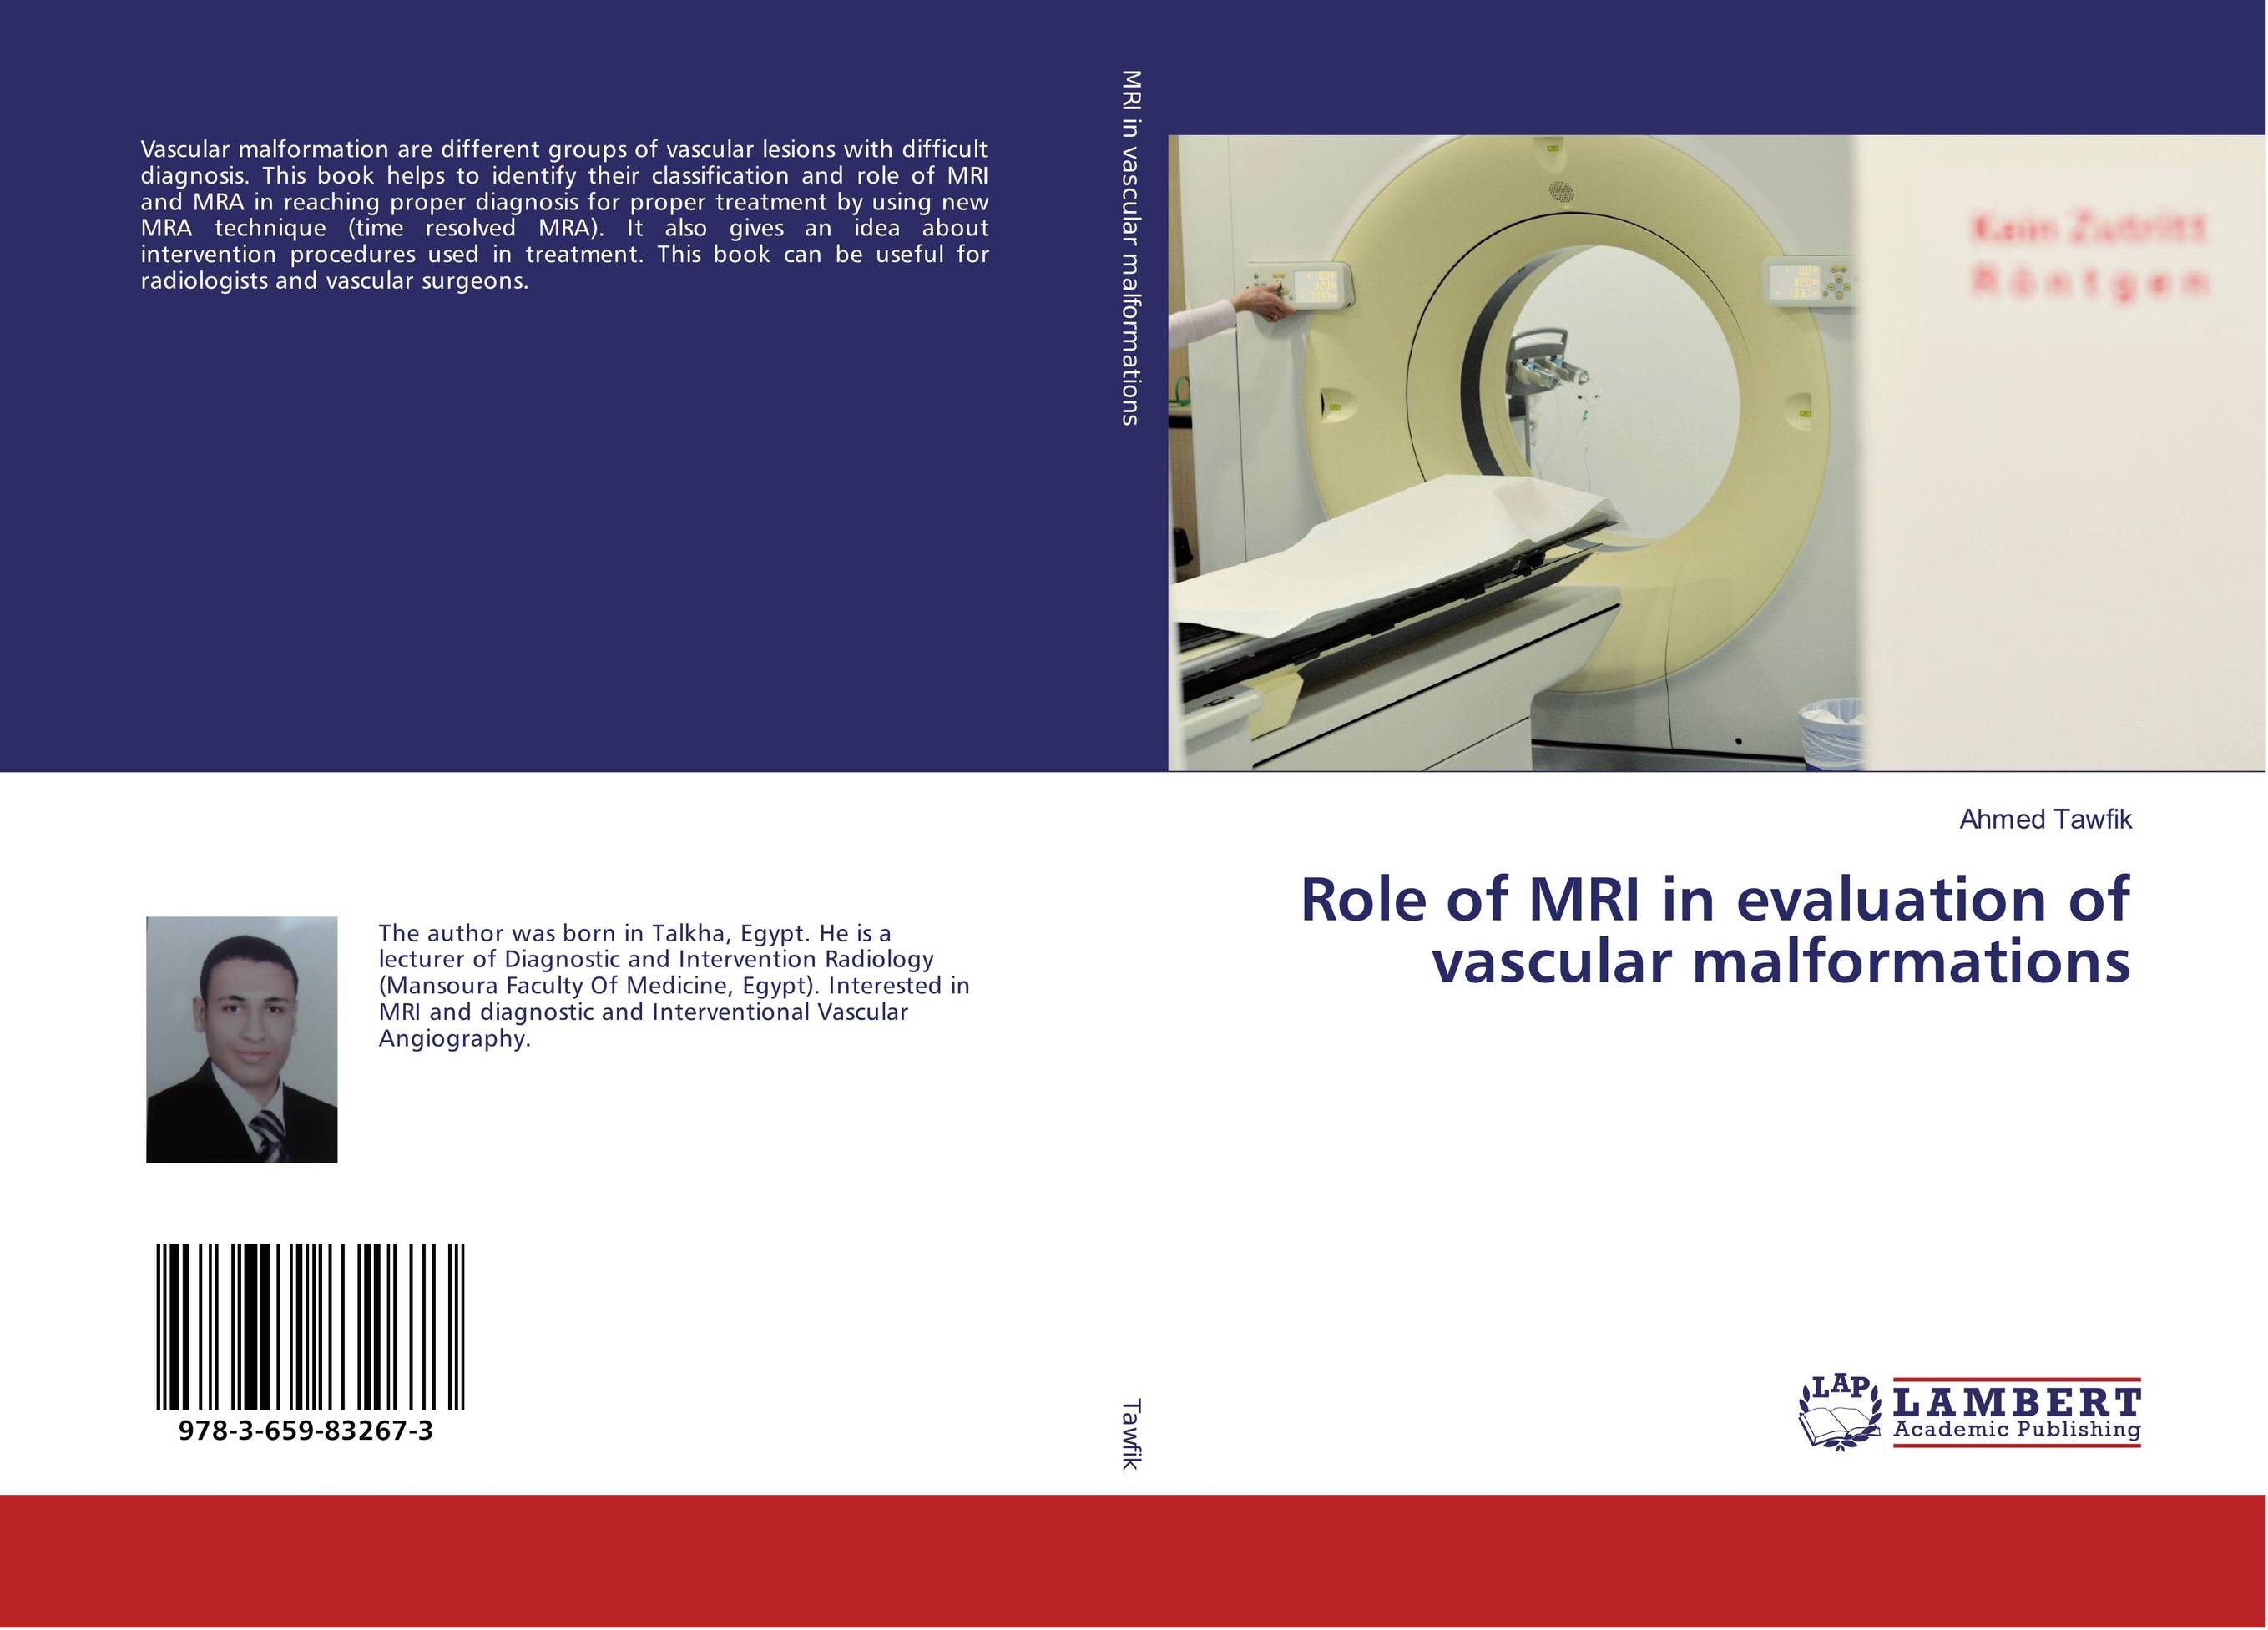 Role of MRI in evaluation of vascular malformations an evaluation of the role of eia database in promoting eia practice